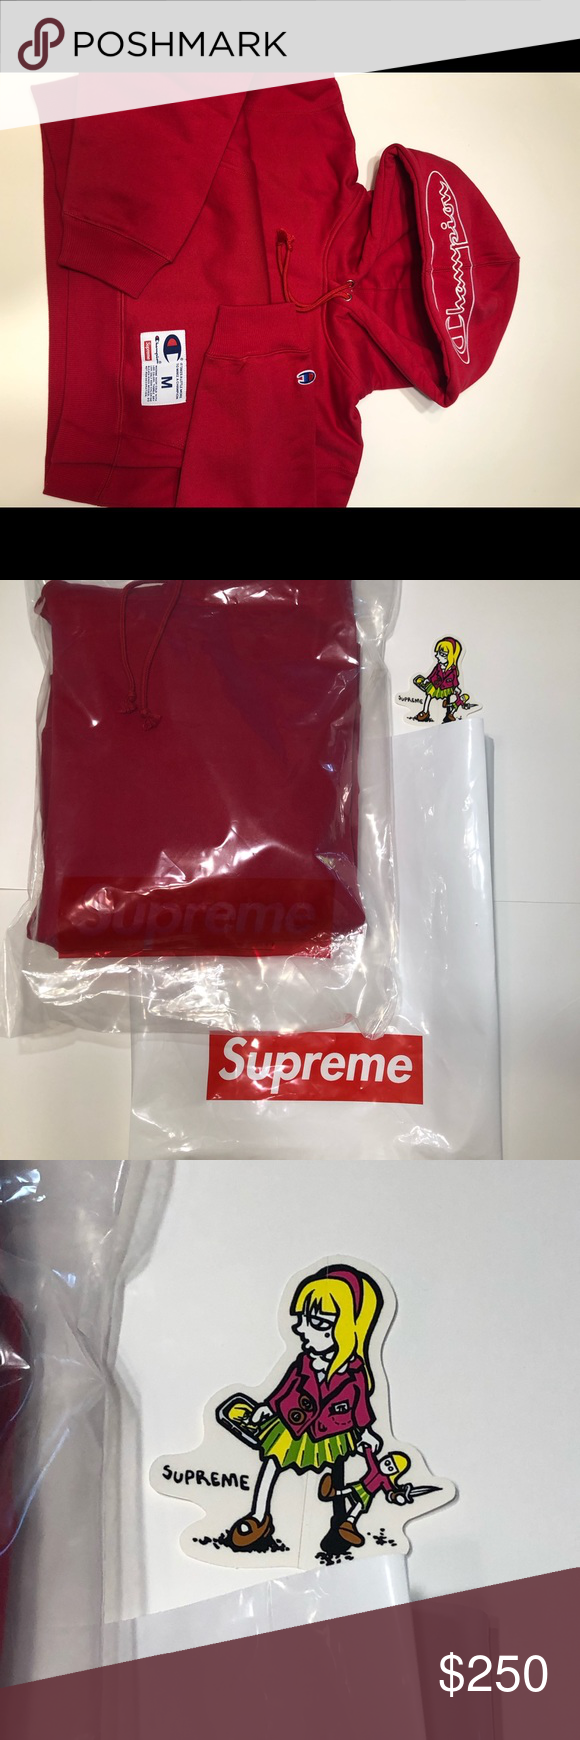 Supreme Champion Outline Hoodie Red Red Hoodie Hoodies Clothes Design [ 1740 x 580 Pixel ]